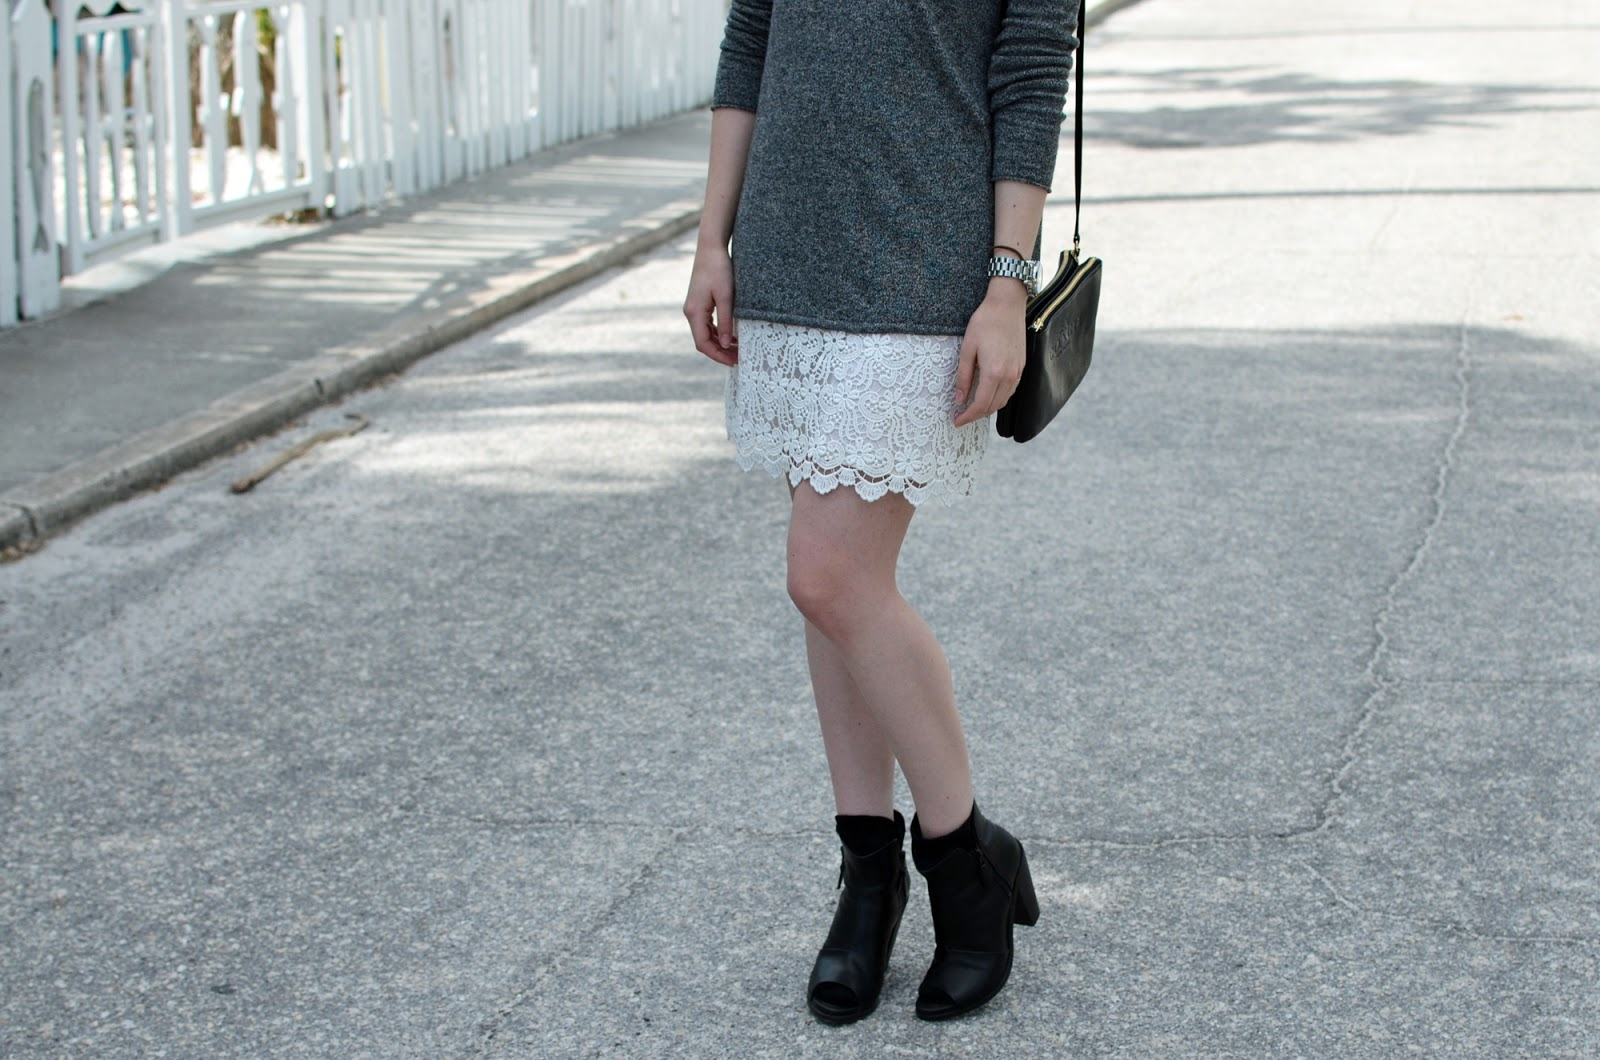 OOTD ft. Zara lace skirt, Aritzia Babaton Erin sweater, Rag & Bone Noelle booties, and a Coach crossbody bag